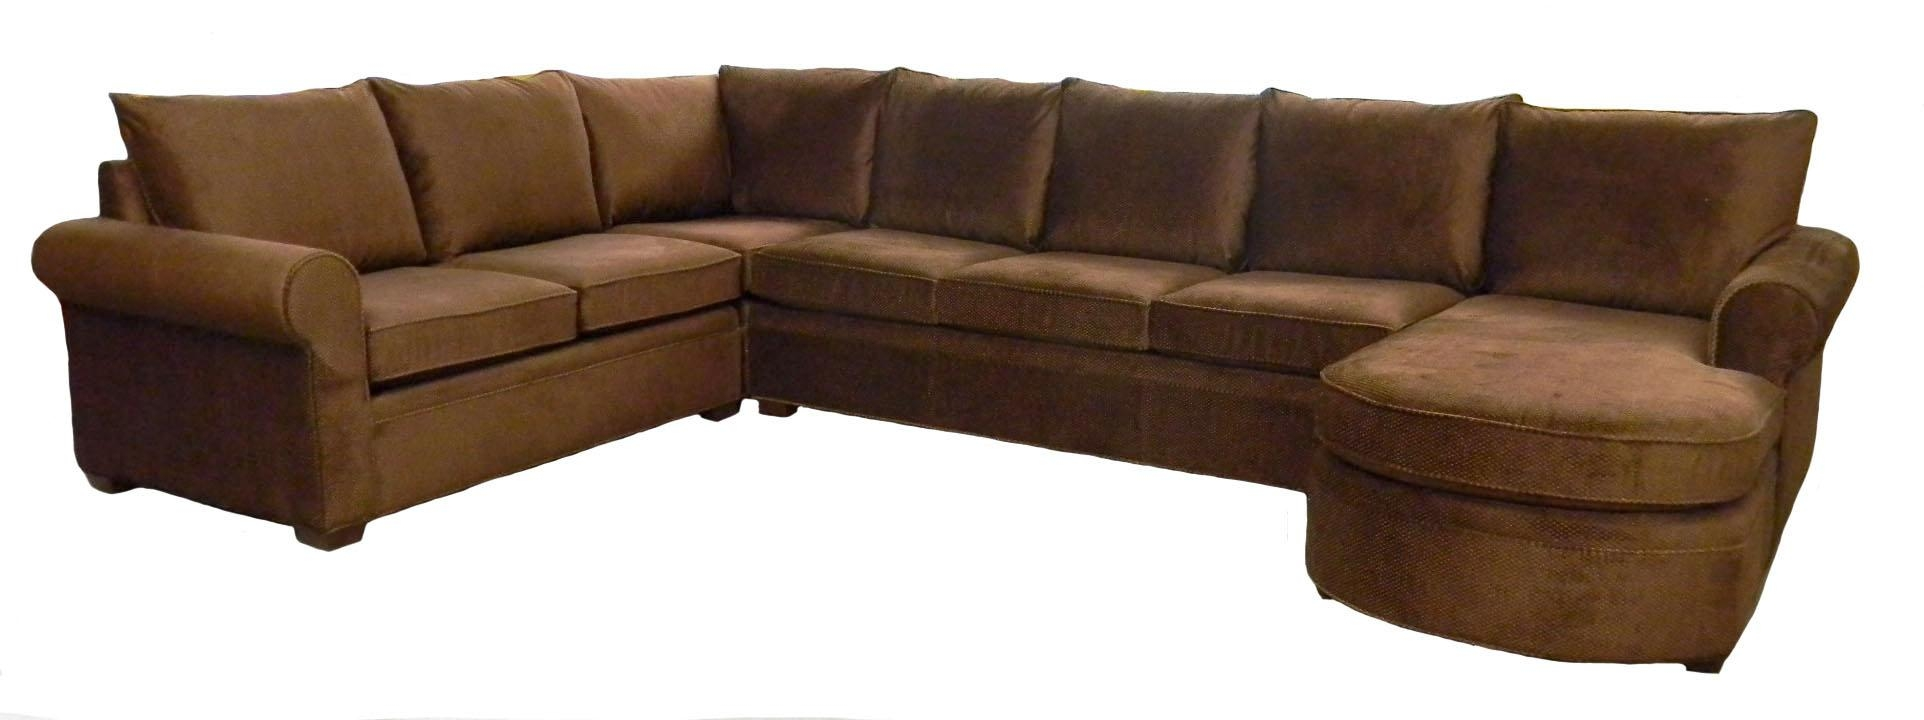 Furniture: Nice Square Sectional Sofa New Trend Living Room Intended For Nice Sectional Couches (View 15 of 20)